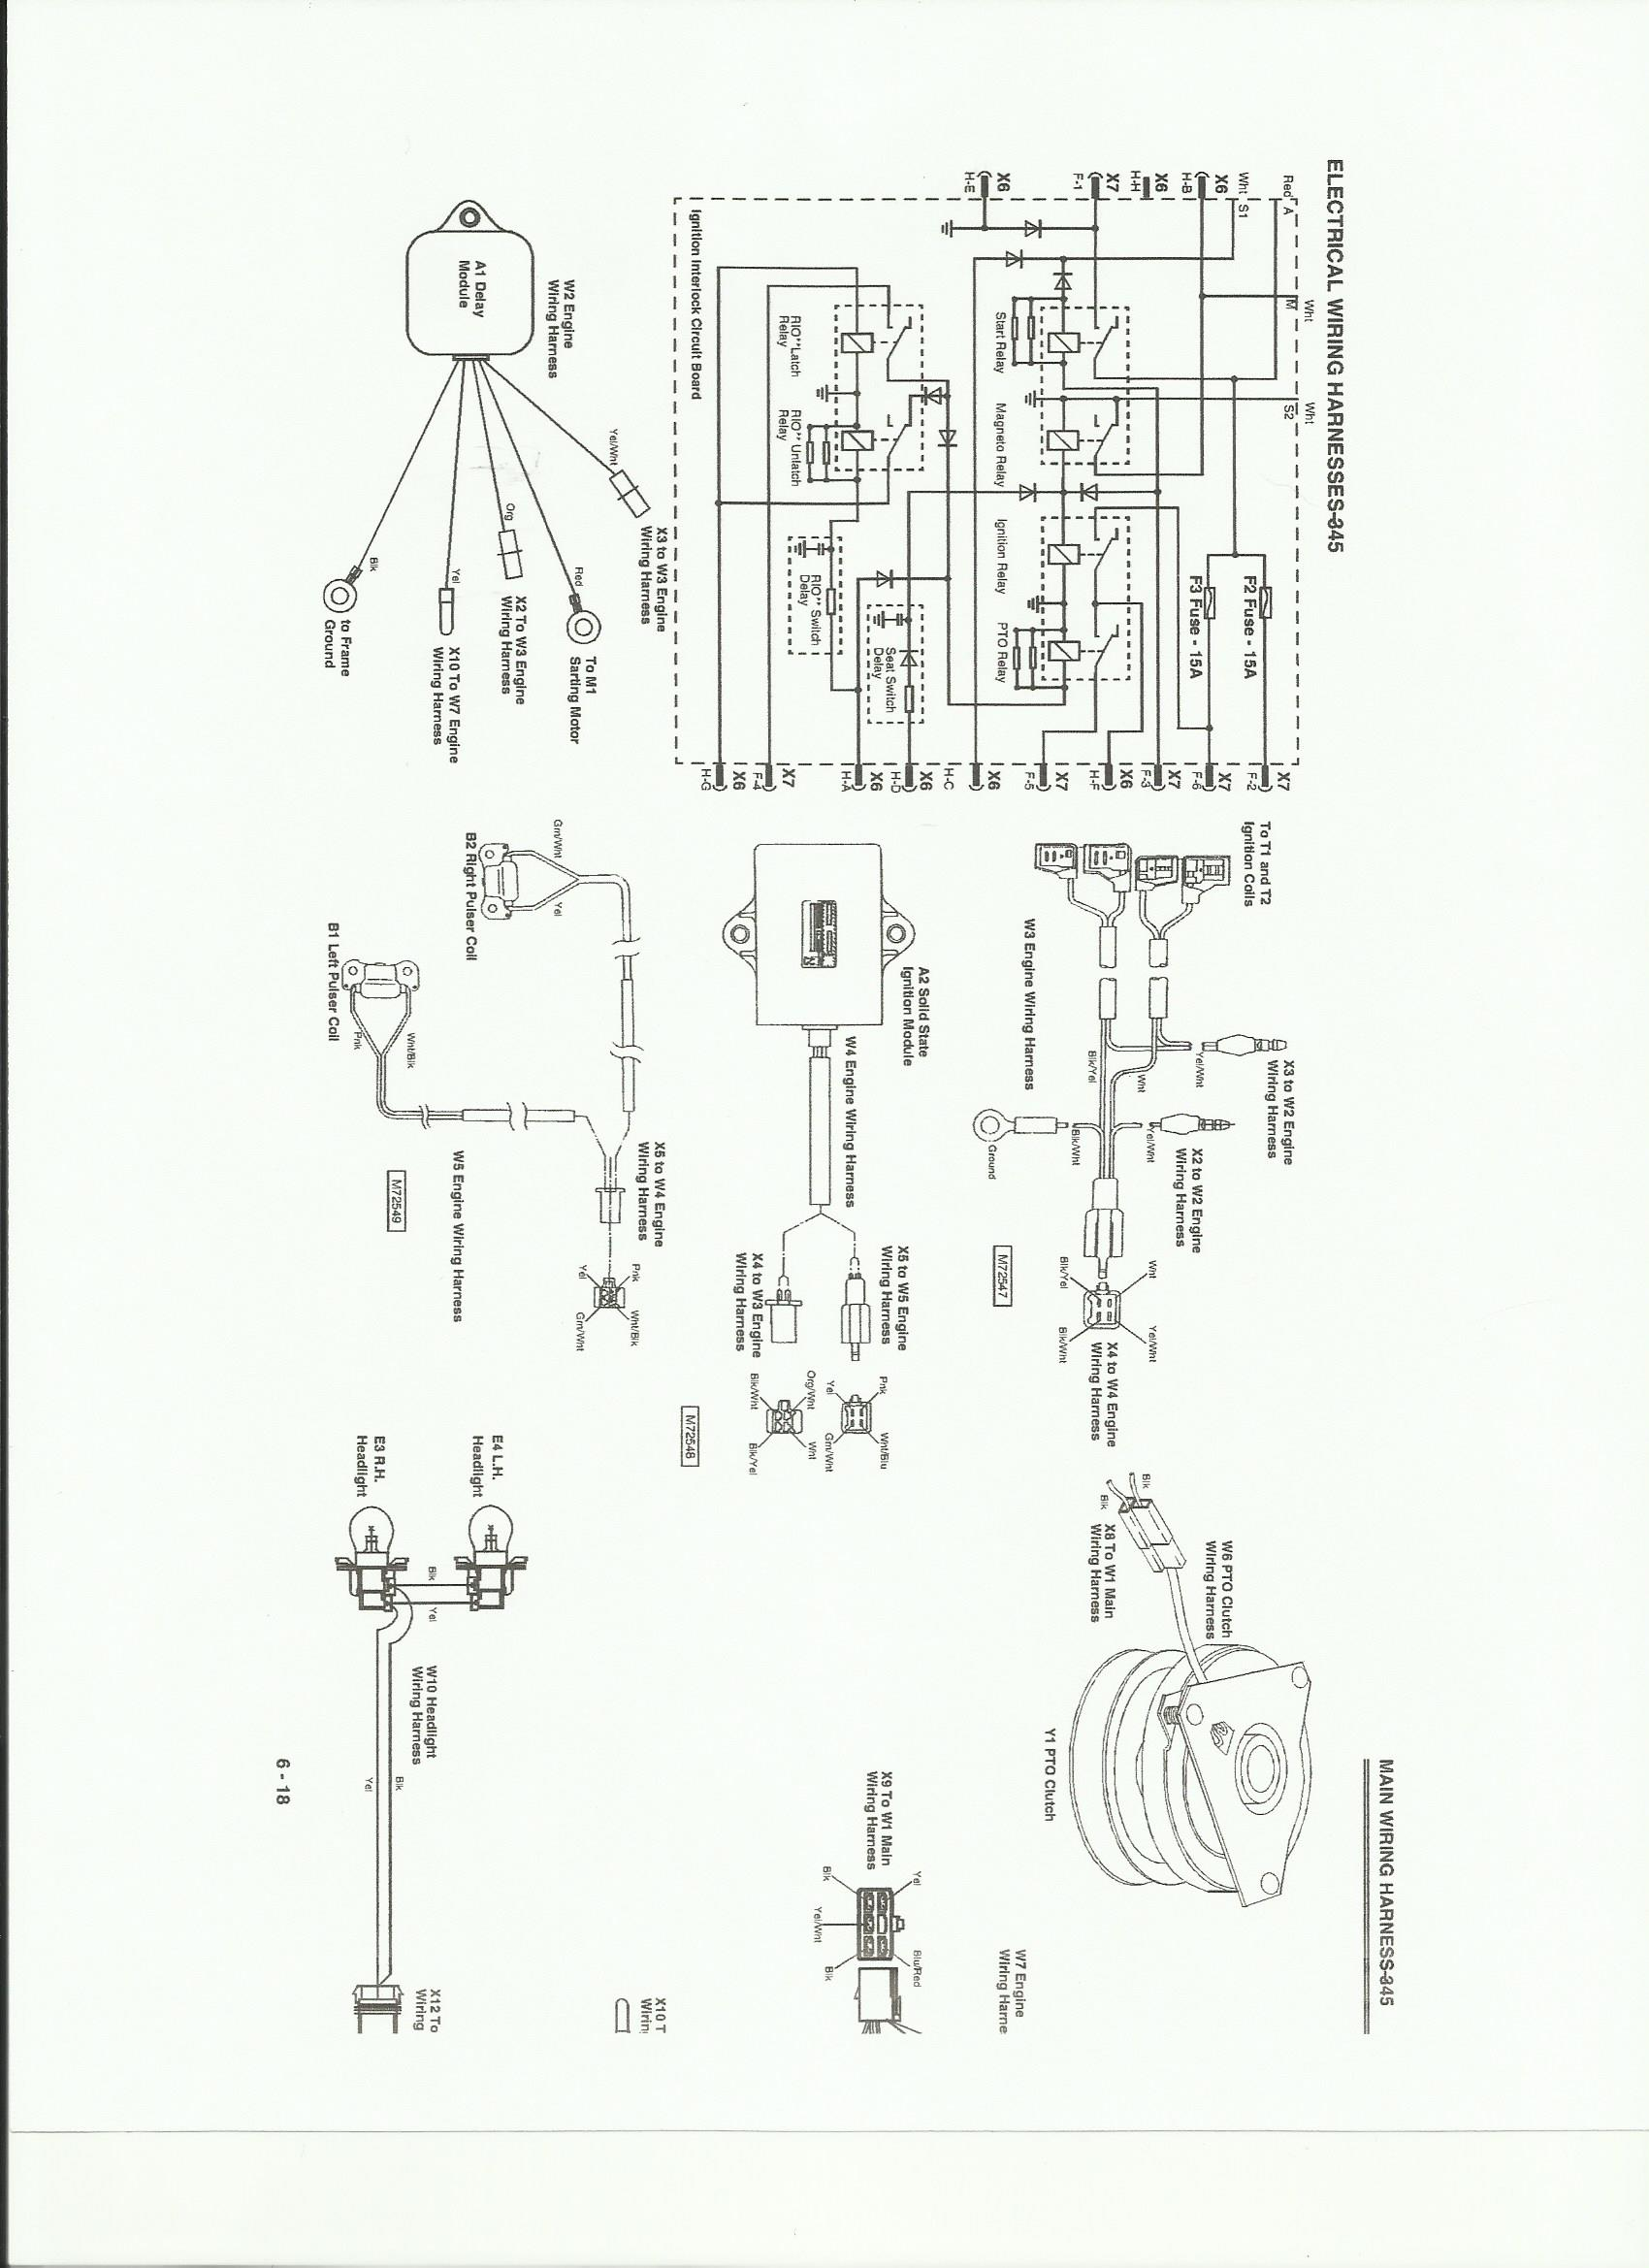 John Deere 345 Wiring Harness Schematic - search wiring ... on john deere charging system diagram, john deere brand, john deere ignition wiring 1010, john deere 4300 pdf manuals, john deere m wiring-diagram, john deere 4430 wiring-diagram, john deere lx255 wiring-diagram, john deere ignition switch diagram, john deere z225 wiring-diagram, john deere stx38 wiring-diagram, john deere lx173 wiring-diagram, john deere parts diagrams, john deere alternator wiring, john deere 190c specs, john deere electrical diagrams, john deere gt235 wiring-diagram, john deere l118 wiring harness, john deere 133 wiring-diagram, john deere 318 ignition wiring, john deere lx172 wiring-diagram,